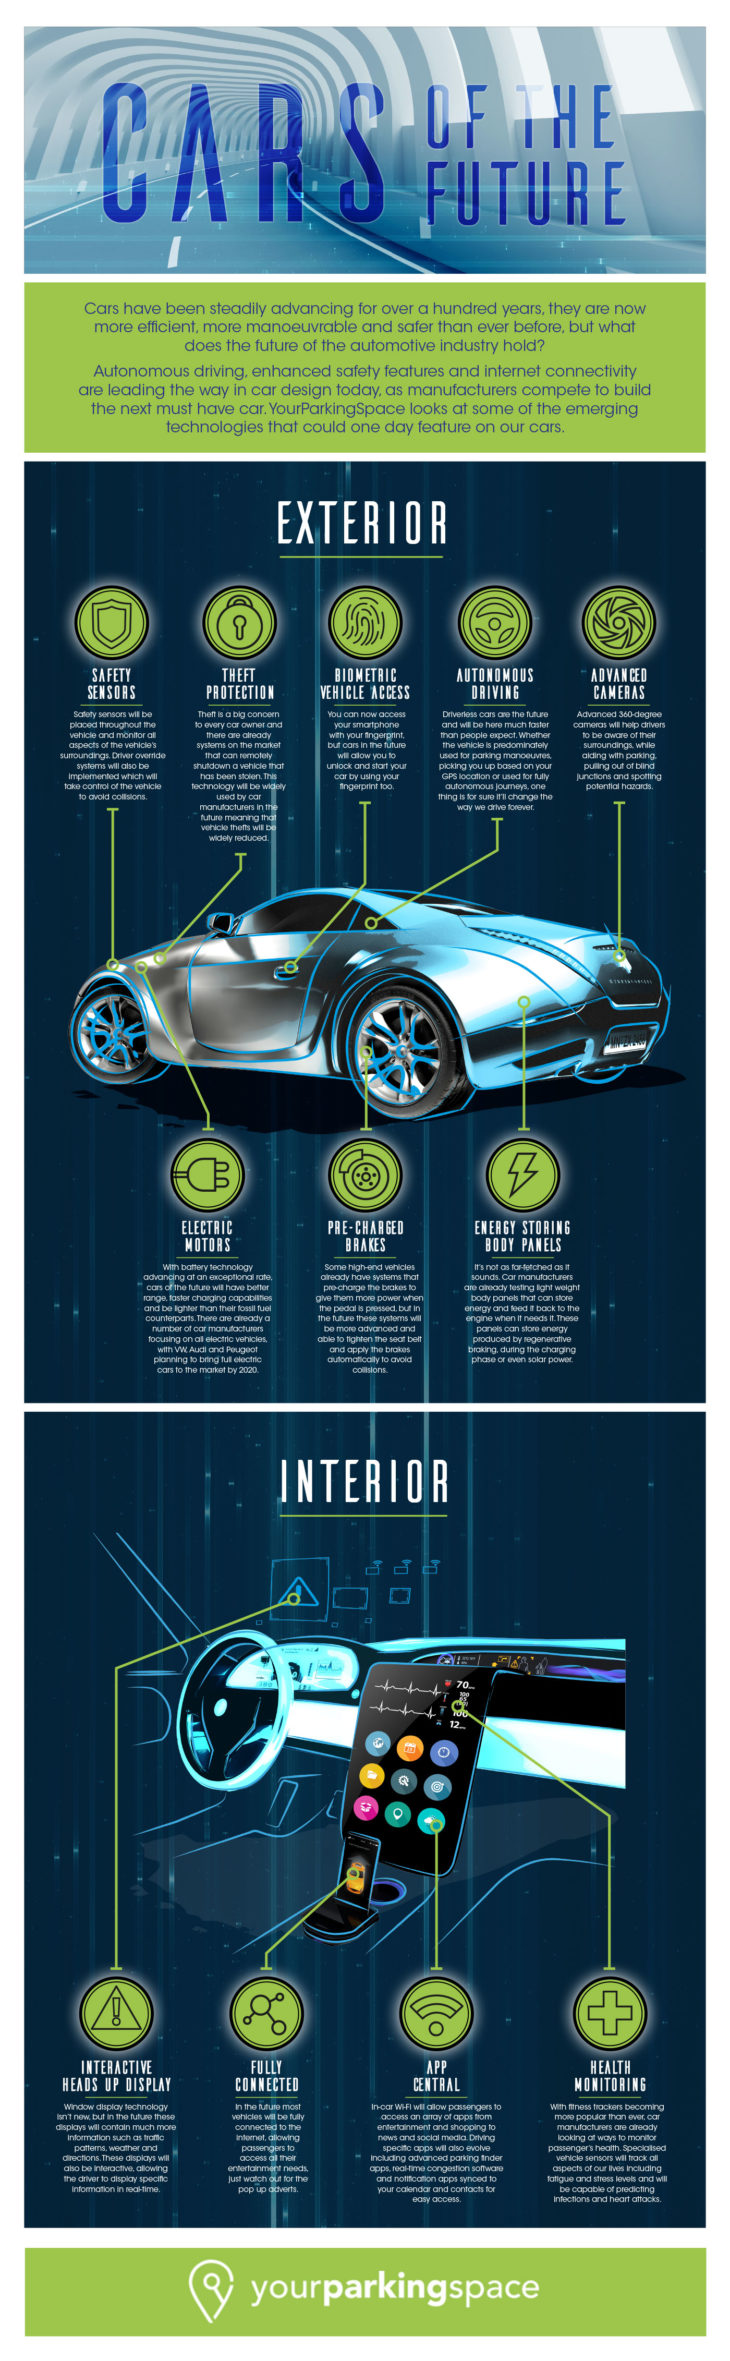 future car infographic 730x2361 at What technology will the cars of the future feature?